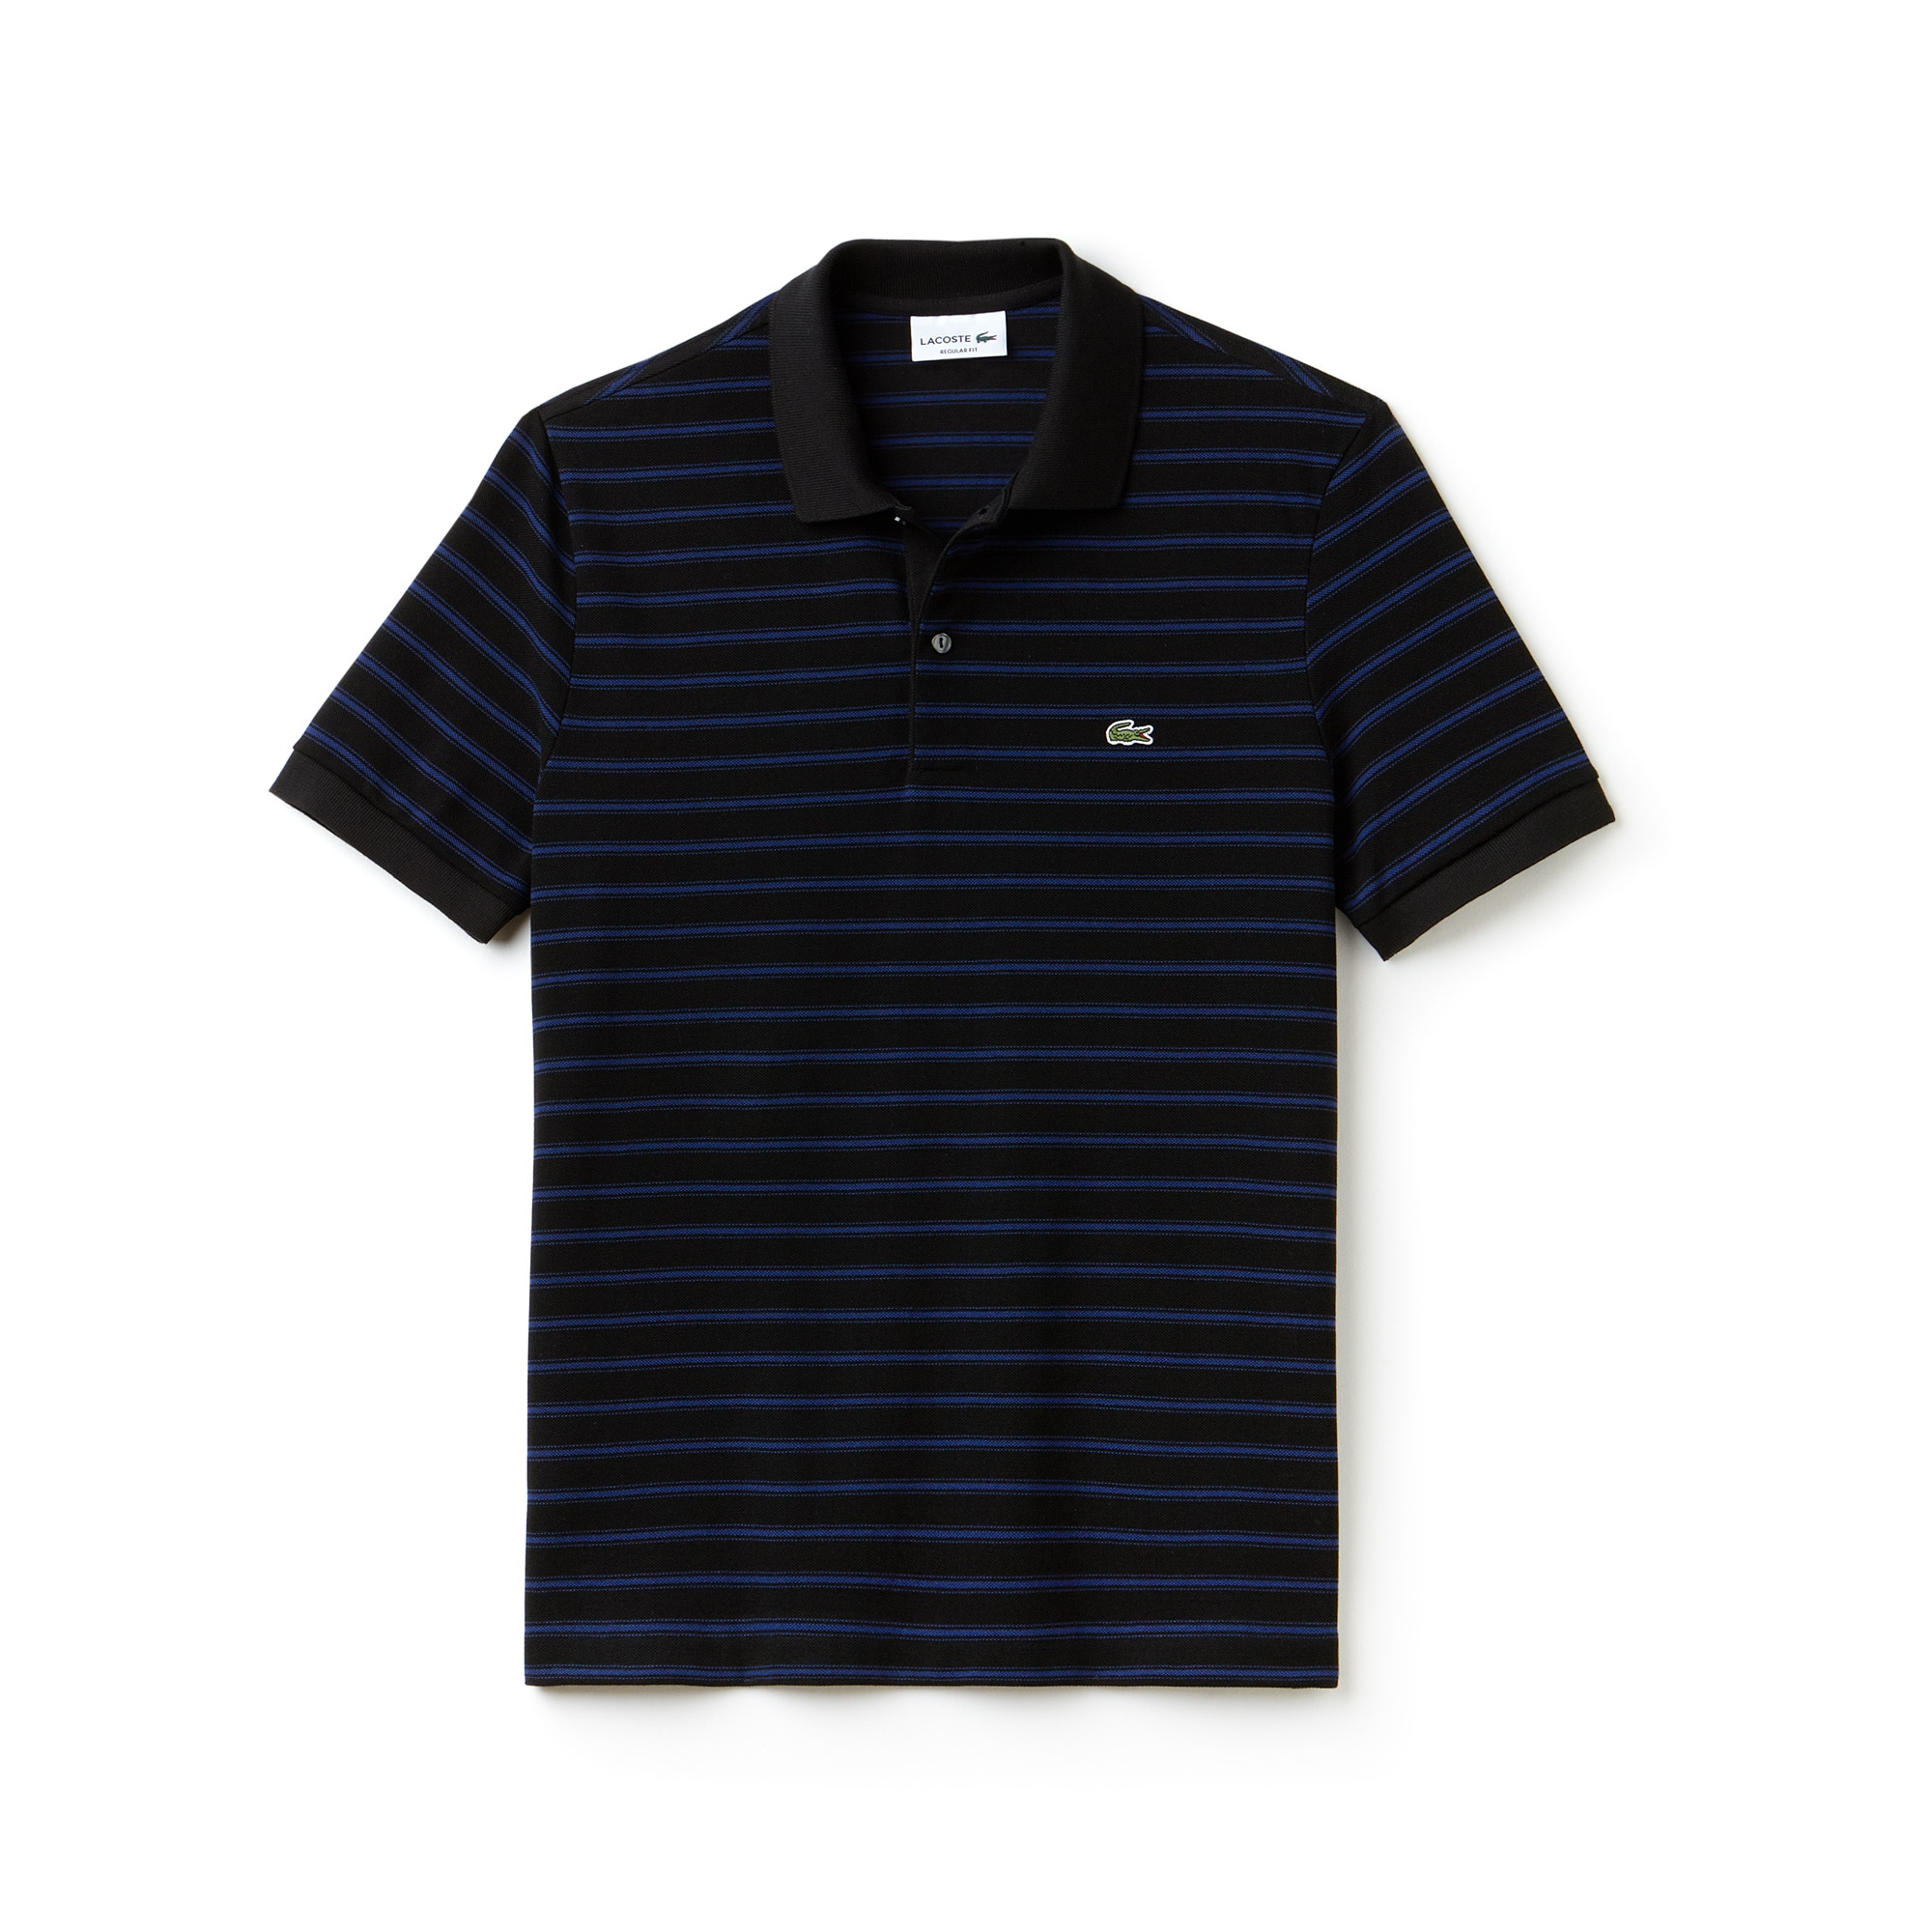 Lacoste New - image 8